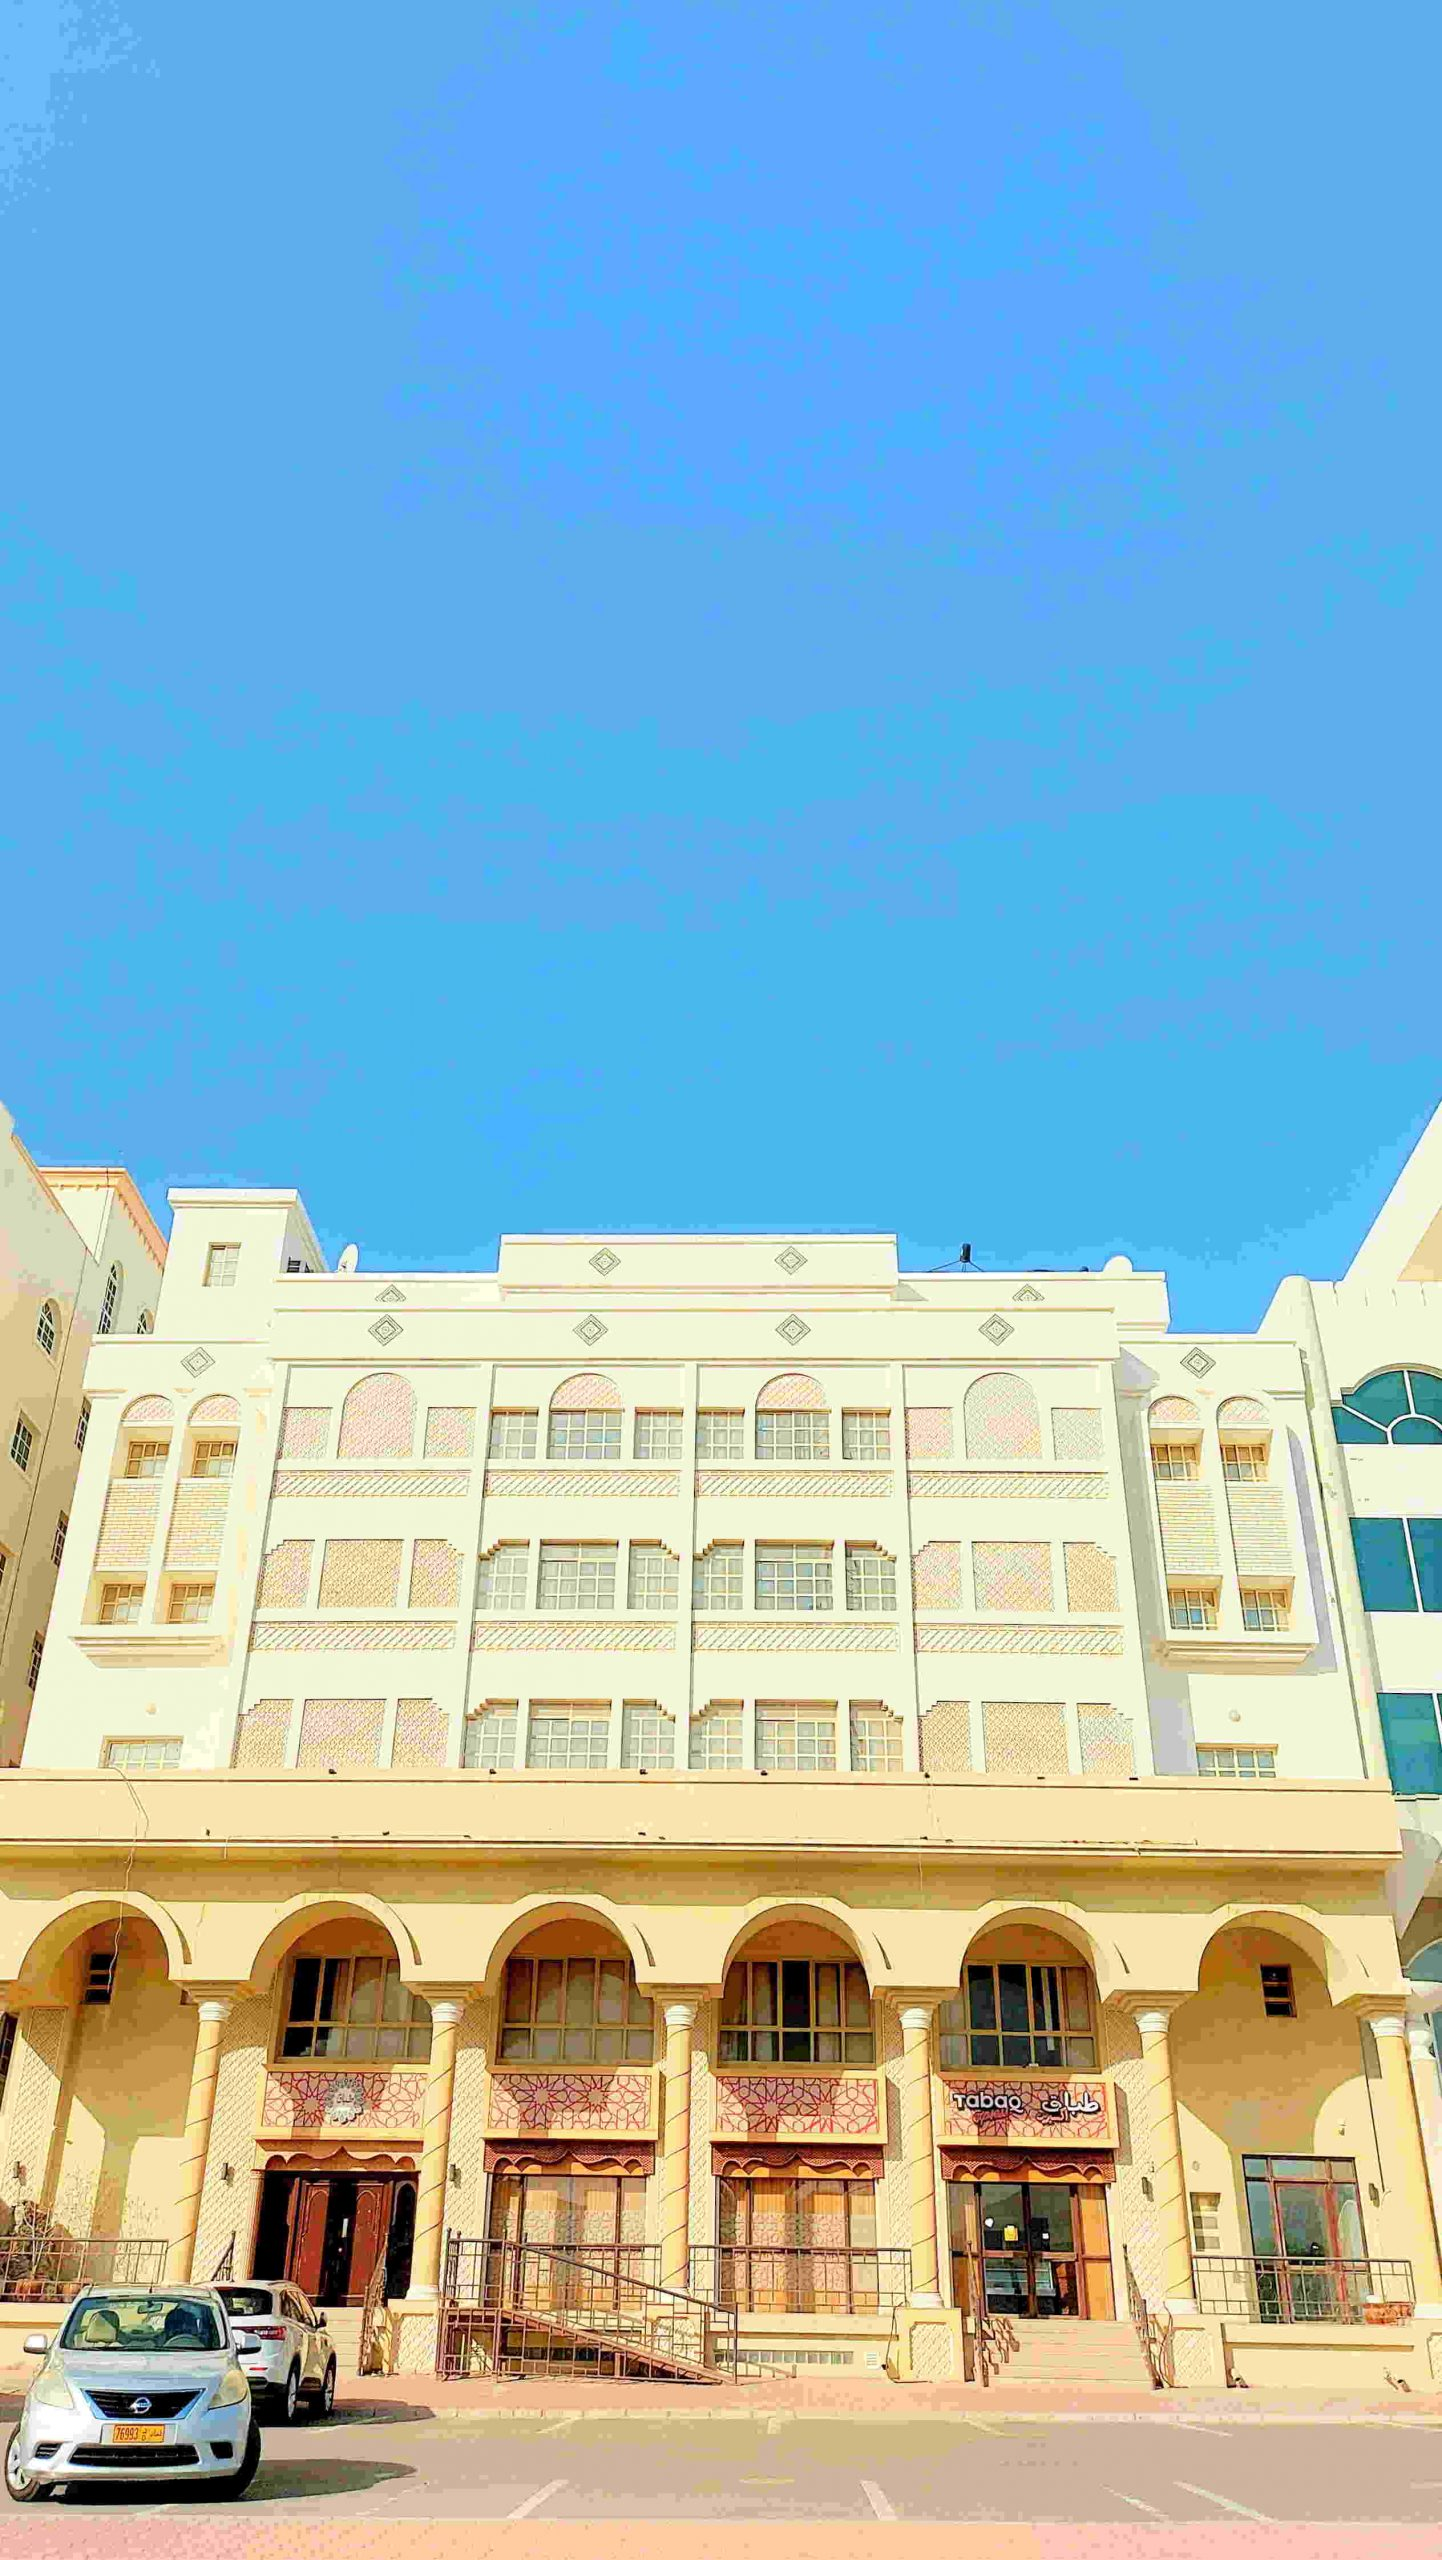 """You are currently viewing Bait Al Ruwi <br><span class=""""headlin"""">MBD Area Ruwi, Muscat, Oman</span><br><span class=""""headlin2"""">Category: 2 Br Apartments/Office Space – For Rent</span>"""